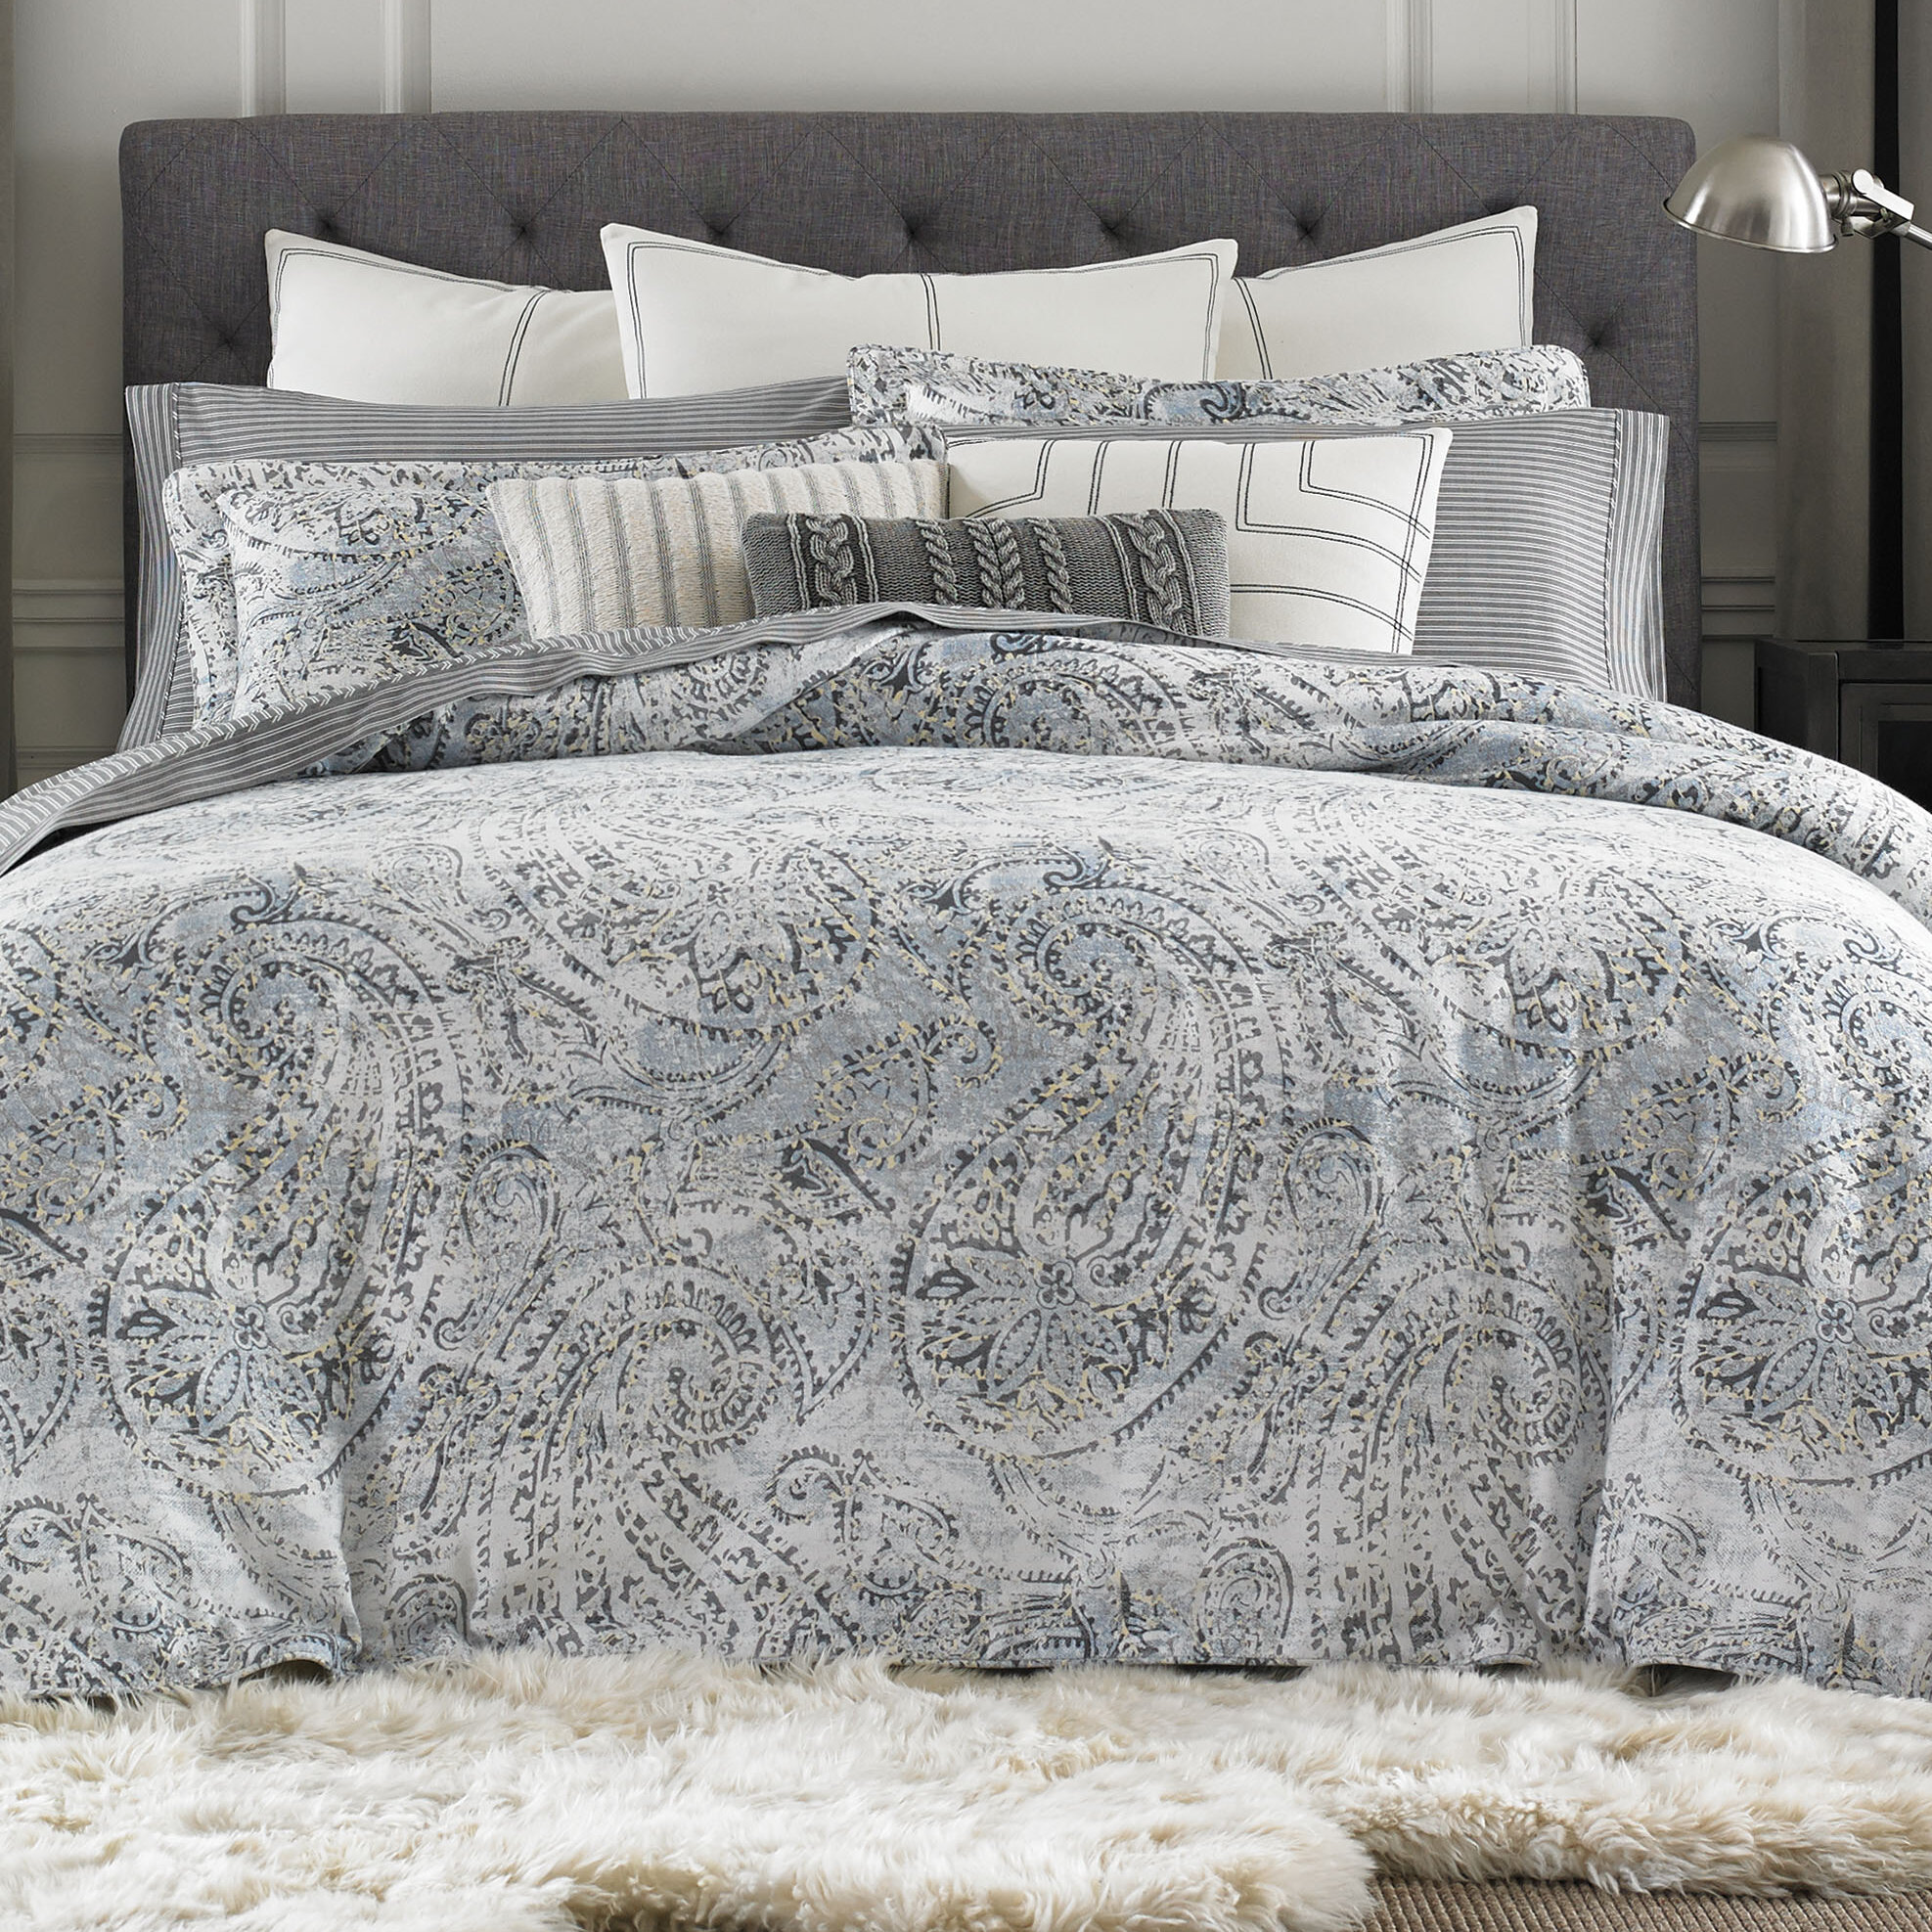 lorelle duvet large shop gray allen bedding cover ca ethan images en paisley